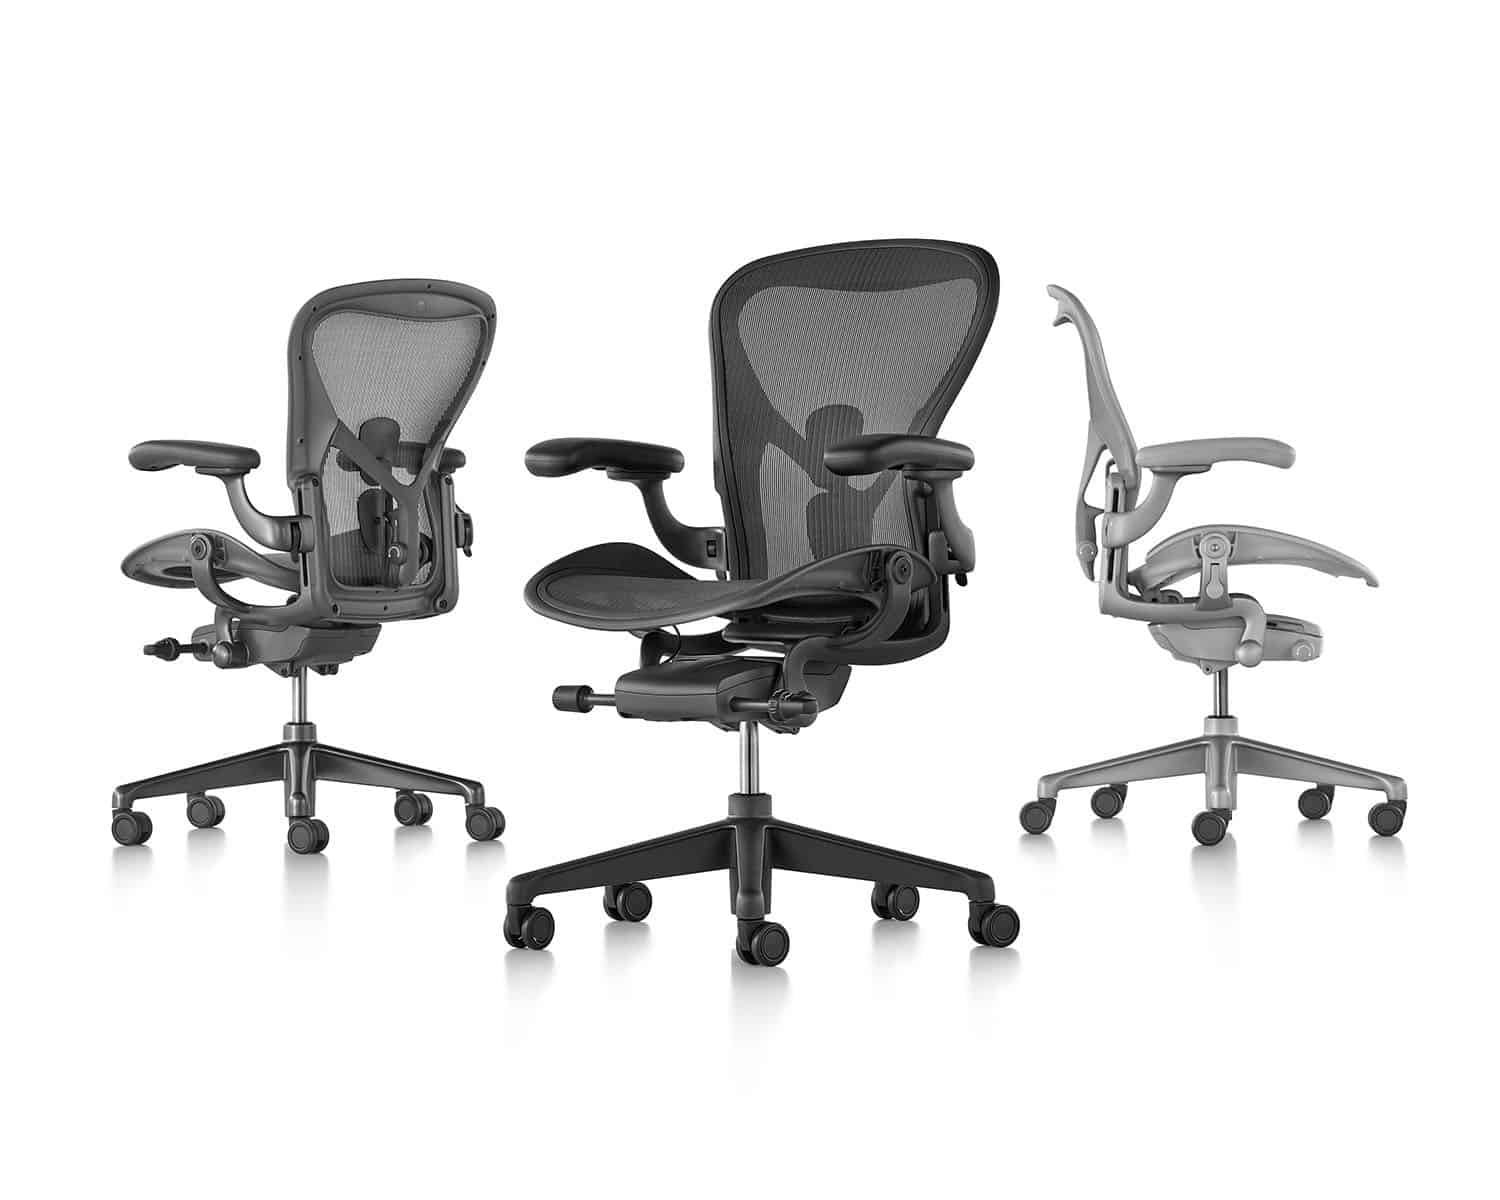 chair products websites chairs full goodmans rek tifdealerwebsitesfull aeron dealer tif